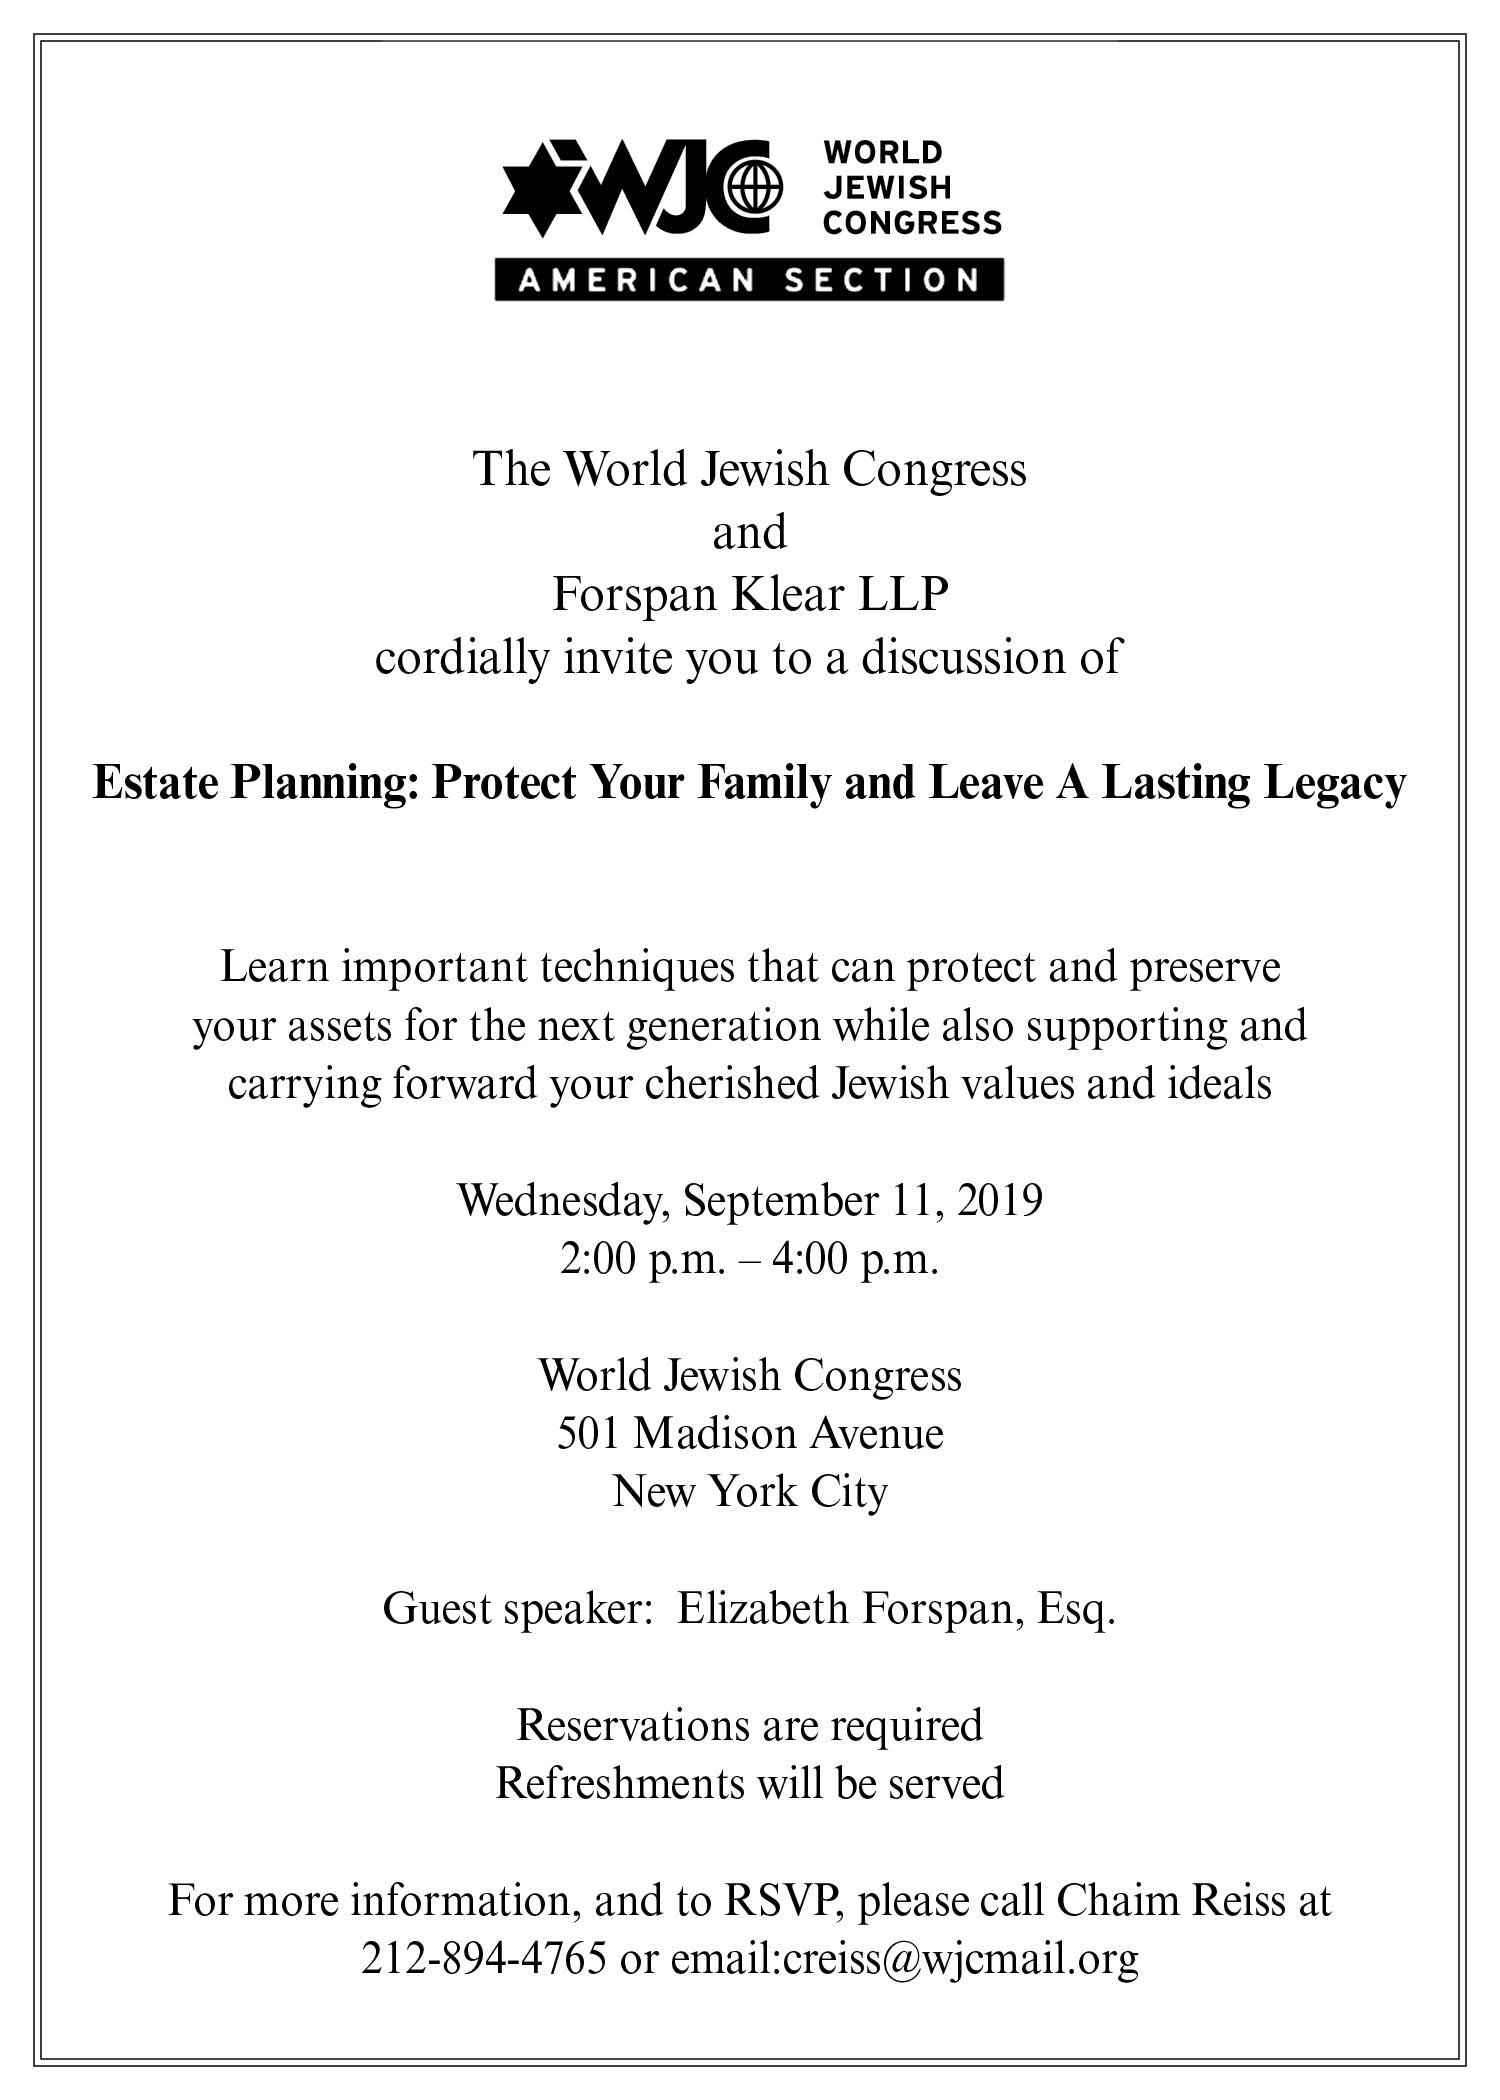 The World Jewish Congress & Forspan Klear LLP Discussion